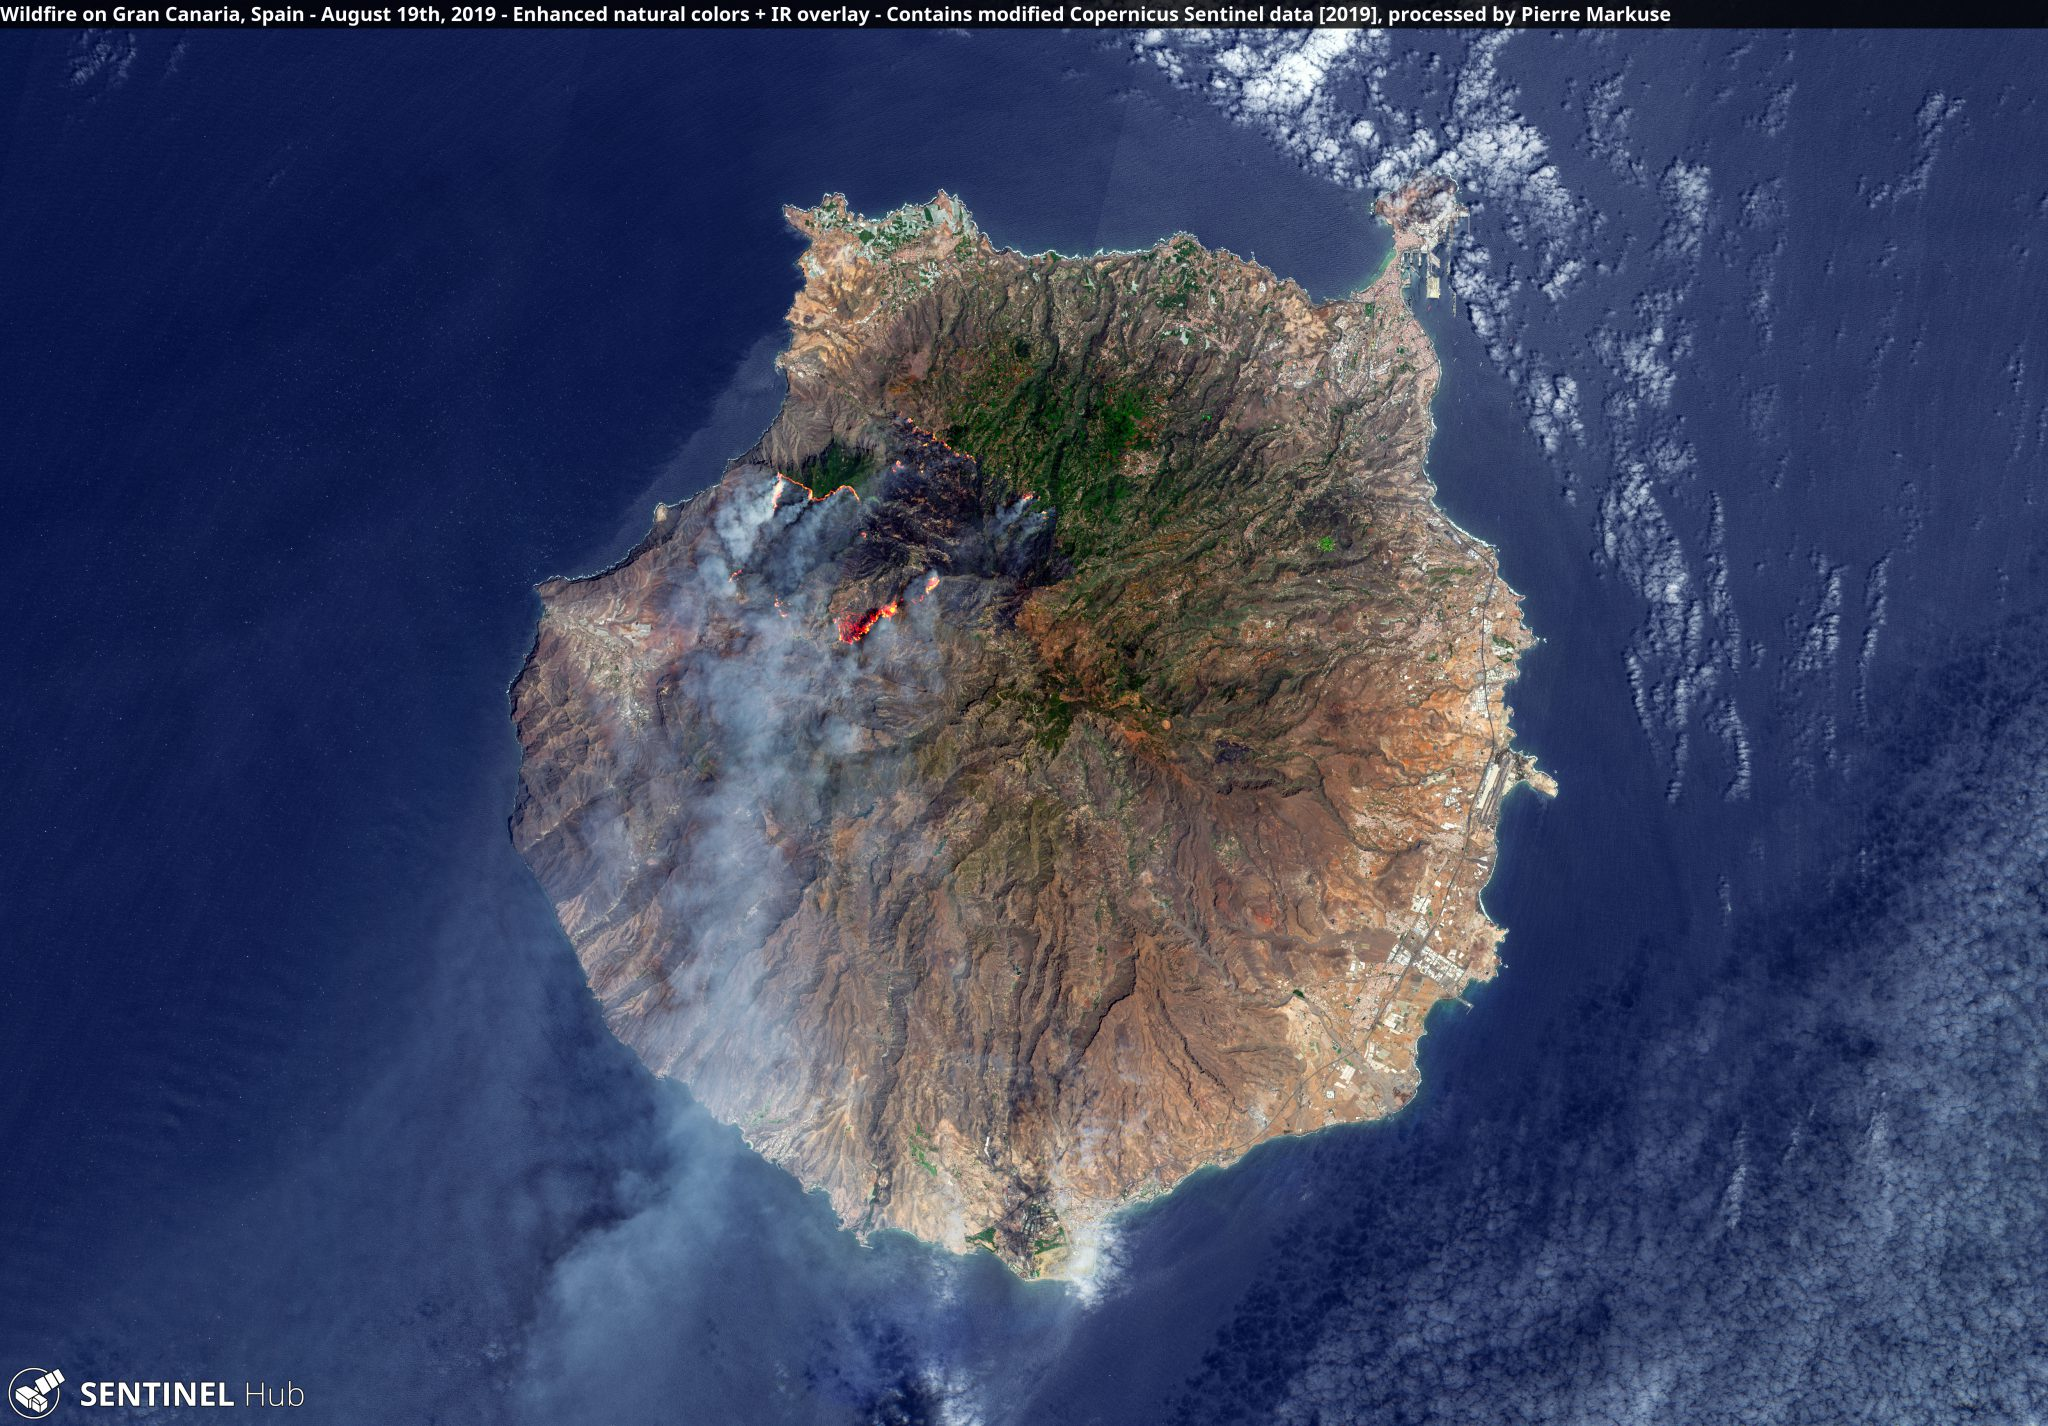 desc:Wildfire on Gran Canaria, Spain - August 19th, 2019 Copernicus/Pierre Markuse